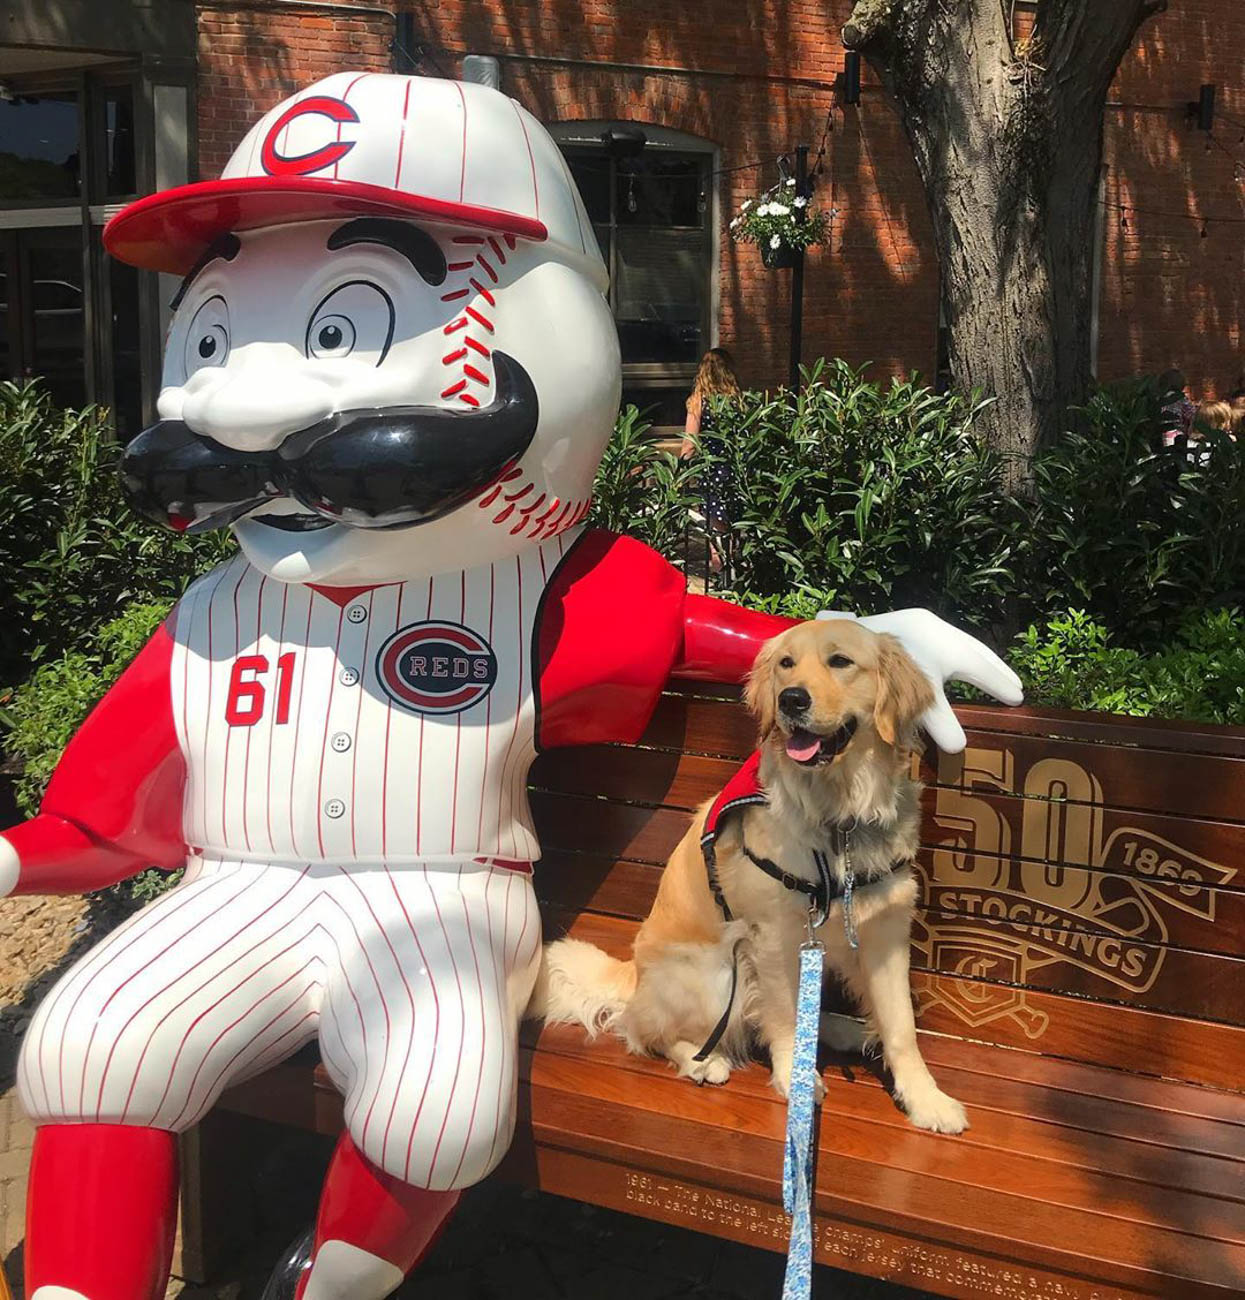 To celebrate the Reds' 150th Anniversary, 24 benches featuring Mr. Redlegs sculptures have been added to various spots around the area, as well as out of town locations including Dayton, Loveland, and Louisville, for the perfect Reds photo op. The mascot sports different uniforms from throughout the team's history at each of the benches. The Reds have been wearing these same throwback uniforms during their 2019 season. / Location: Bike Path in Downtown Loveland / Uniform: 1961 / Image courtesy of Instagram user @magby4paws   // Published: 5.14.19